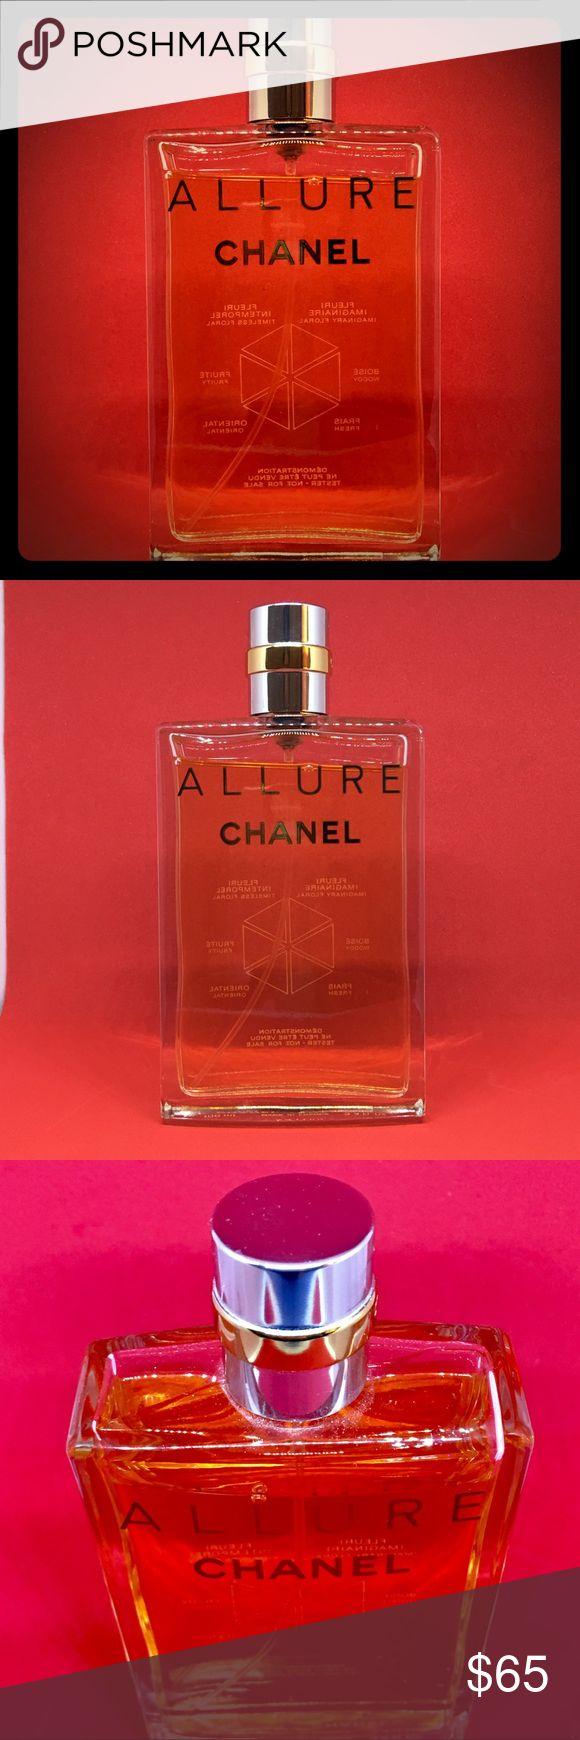 Chanel Allure 😍 3.4 Fl Oz Chanel Allure 😍 3.4 Fl Oz  PRODUCT DESCRIPTION: Difficult to define, impossible to resist. Clean and sheer, warm and sexy, ALLURE is a floral, fresh Oriental fragrance that finds an expression unique to each woman. Because every woman has her own special allure.  Brand new perfume only worn twice!! As shown above and pictures only a bit of the perfume has been used!! ❤️ CHANEL Other